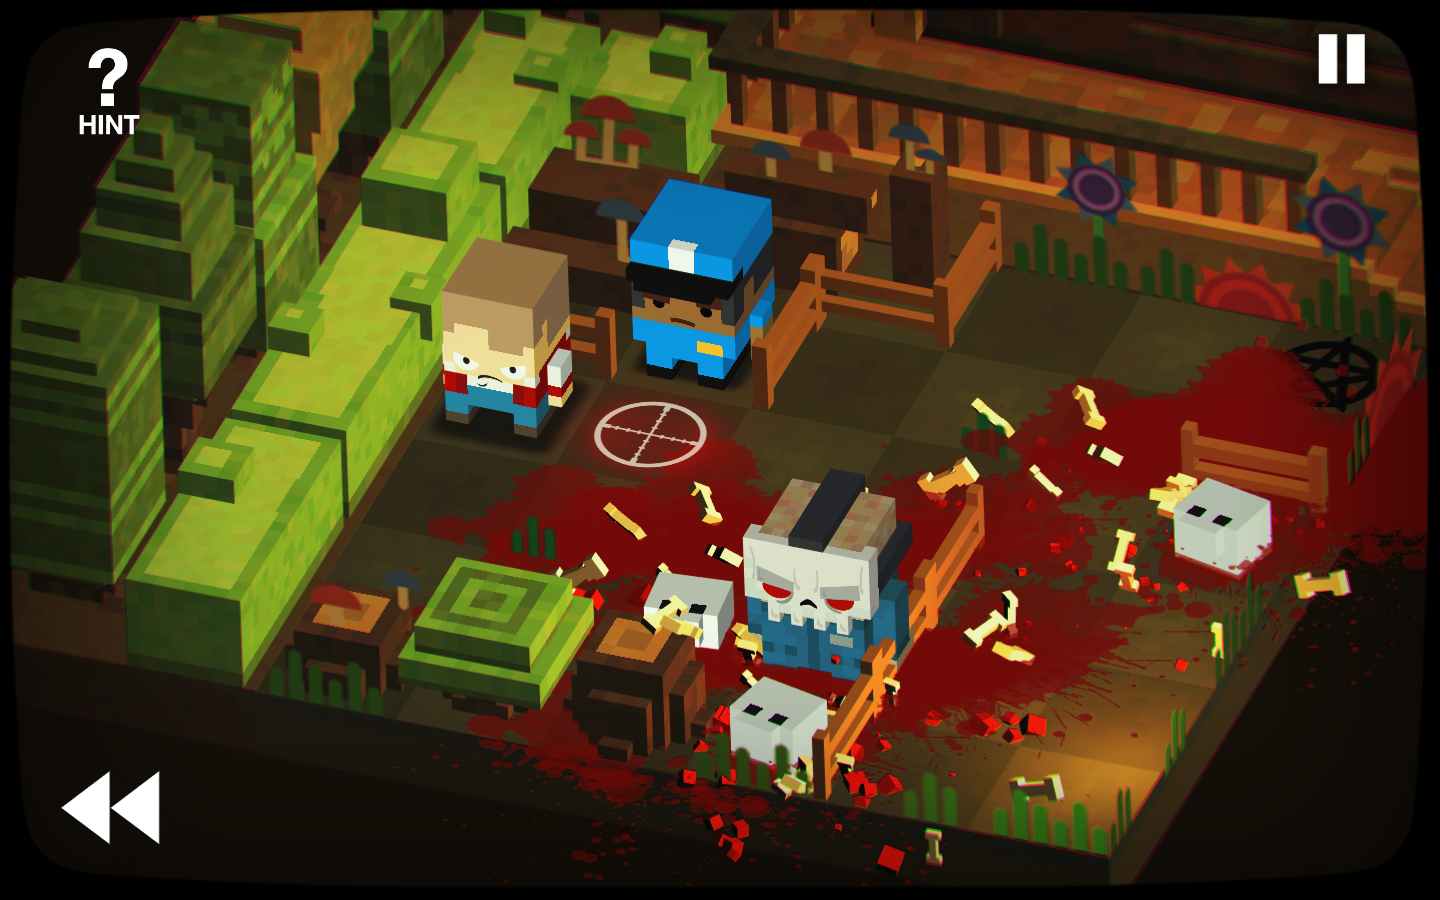 Slayaway Camp 80's slasher sliding puzzle game screenshot